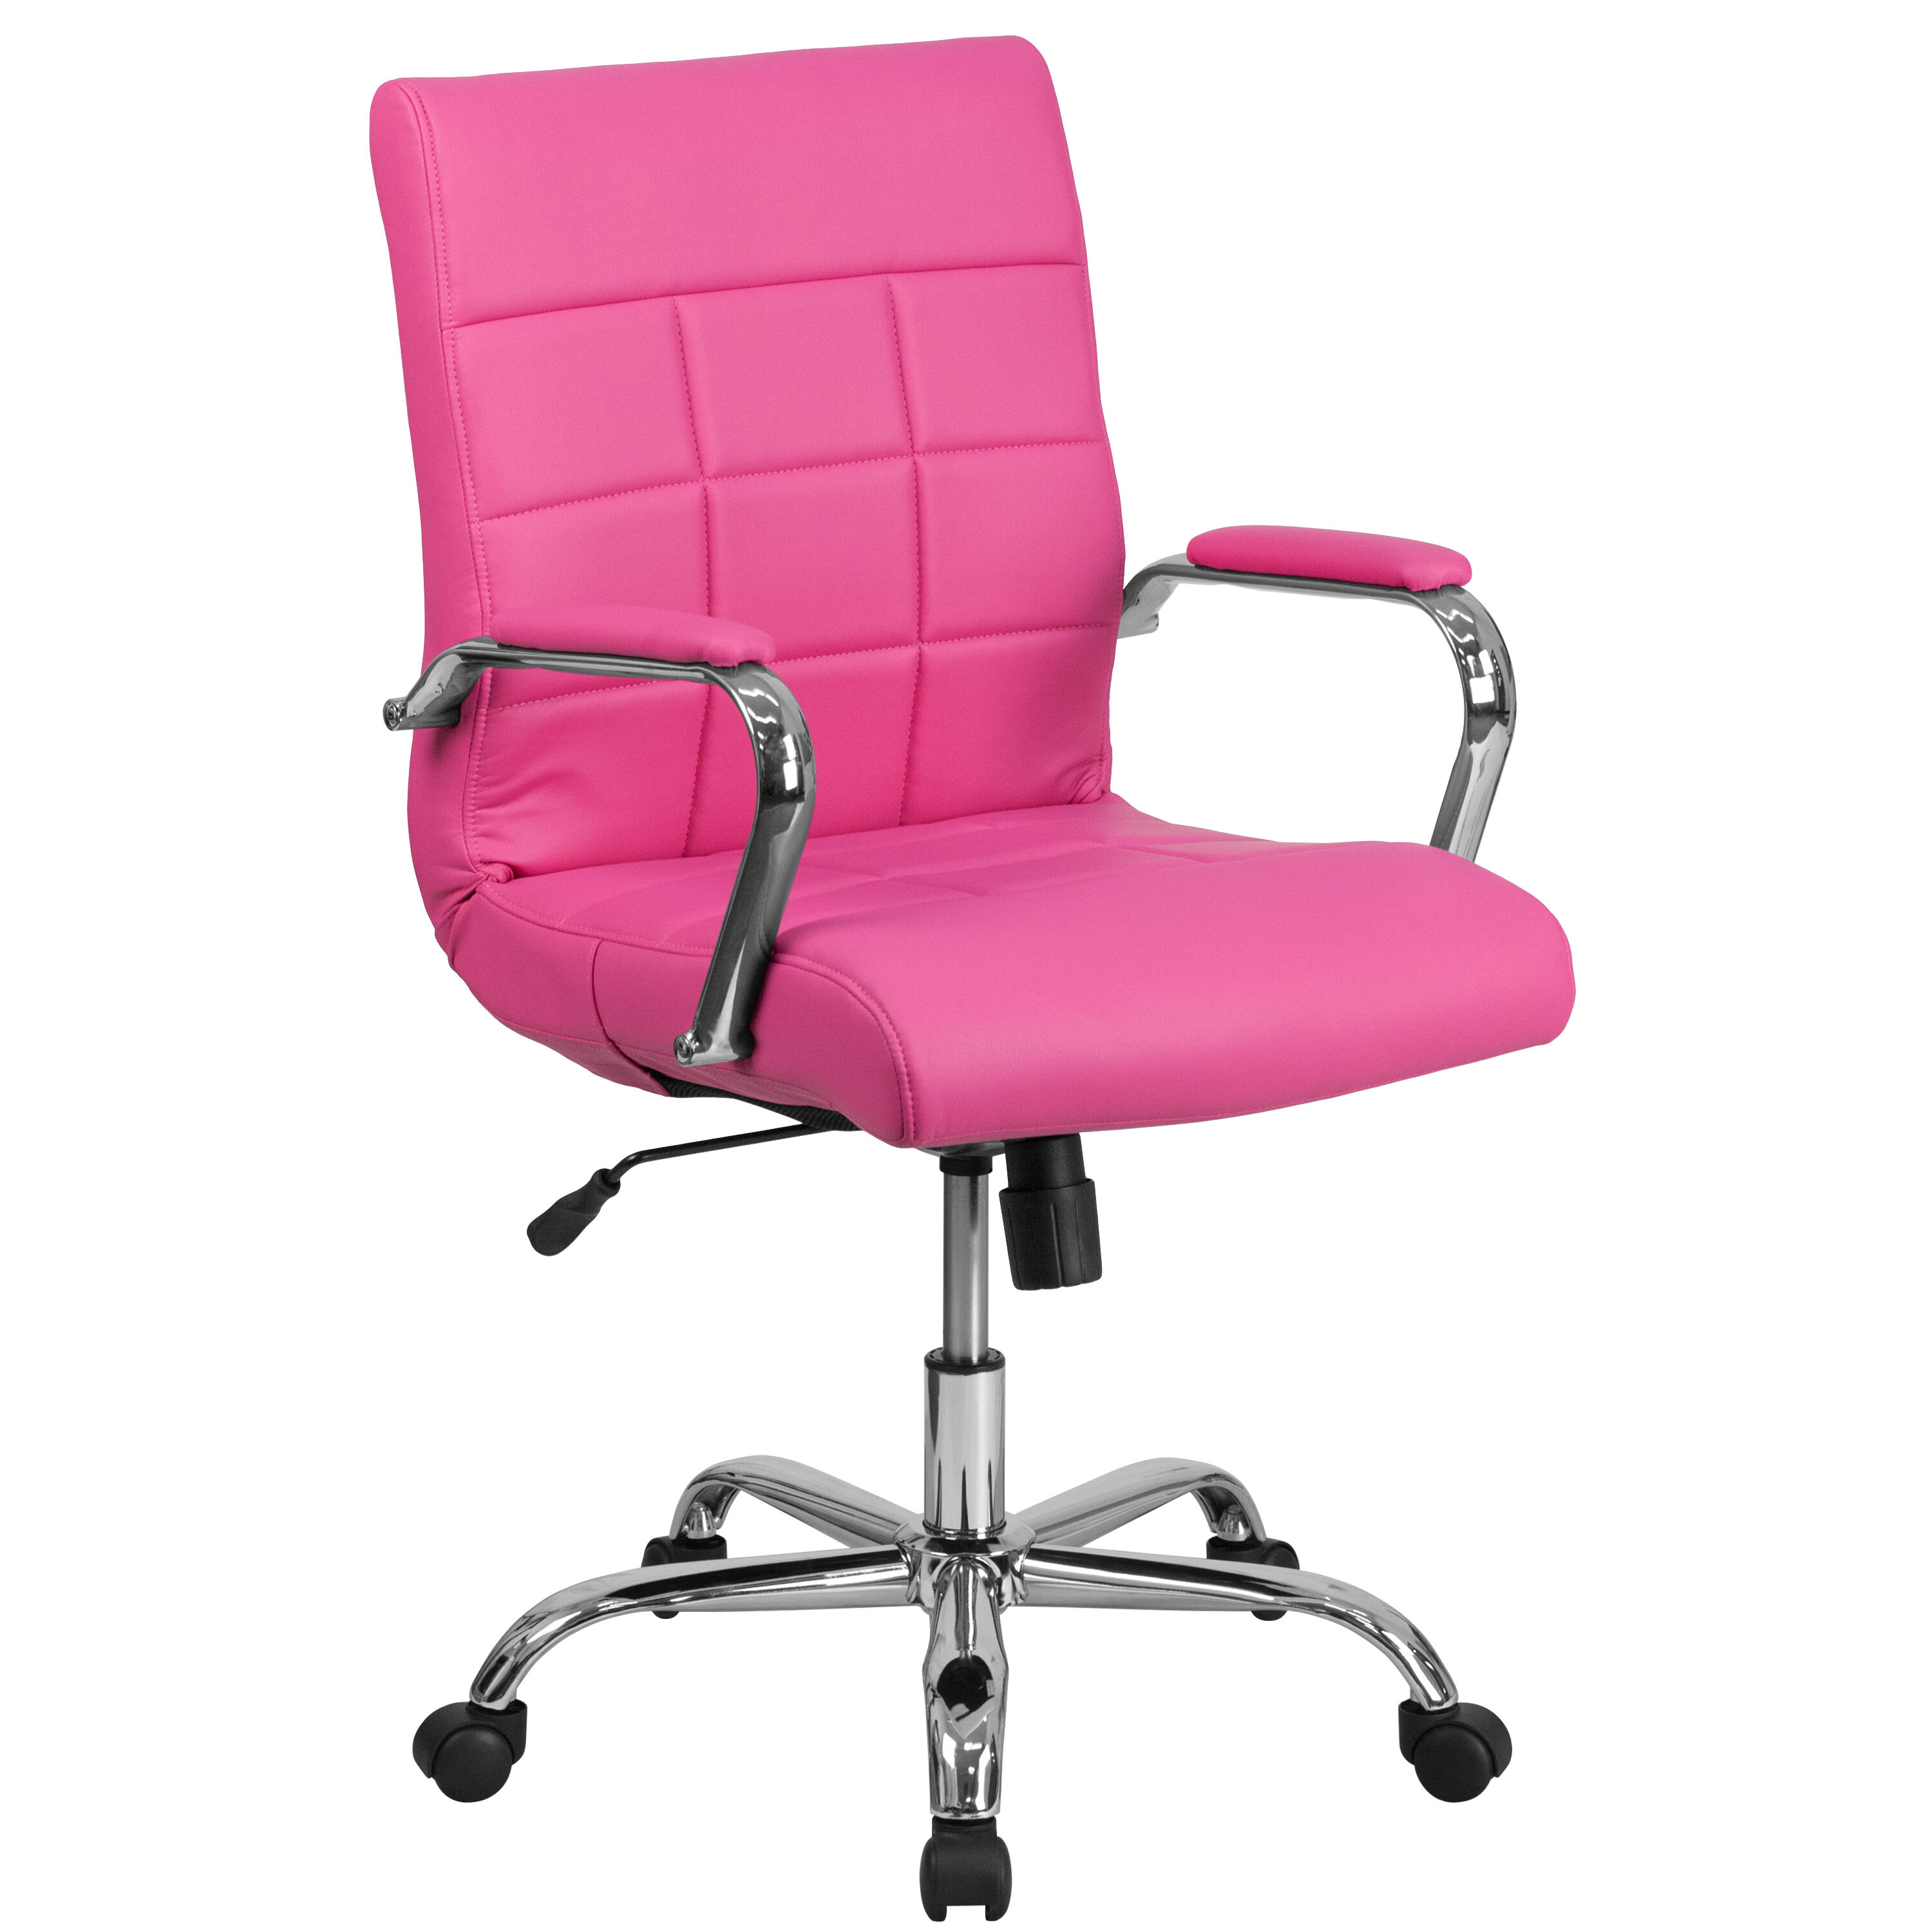 Pink Office Chairs Mid Back Pink Vinyl Executive Swivel Office Chair With Chrome Base And Arms